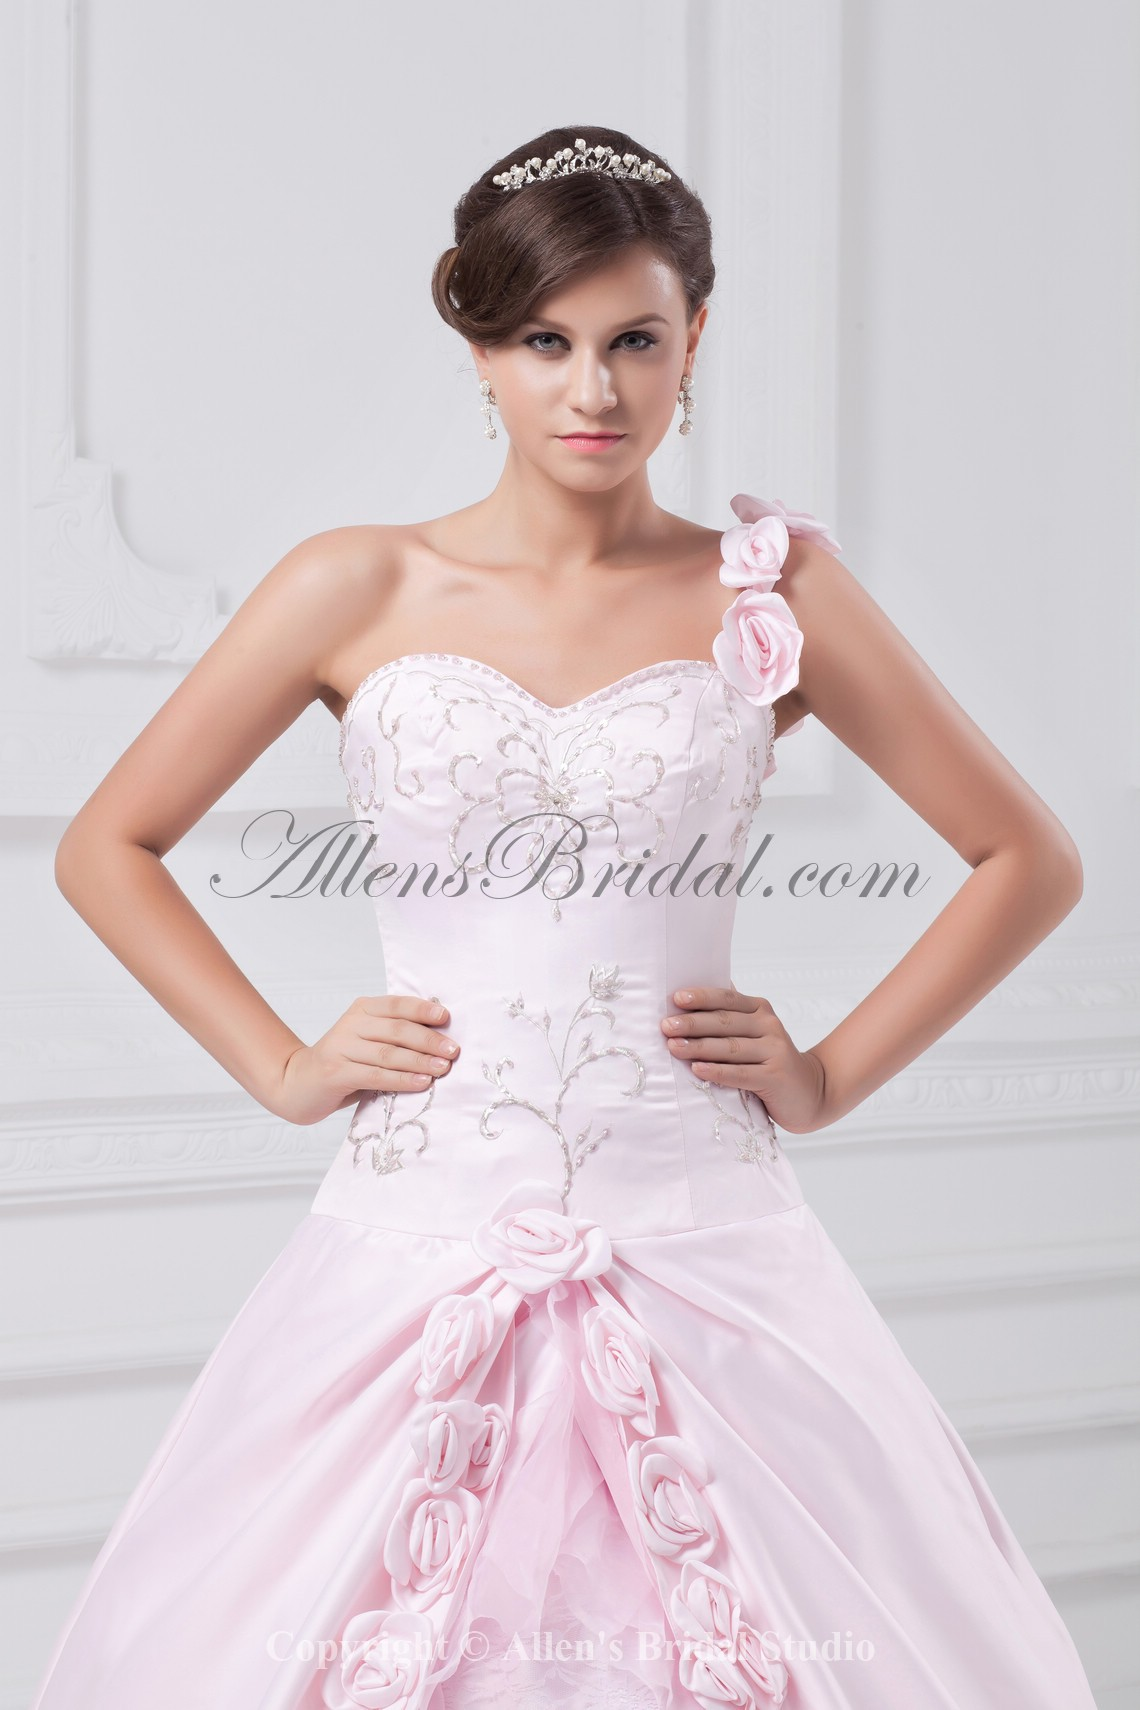 /869-6963/satin-sweetheart-neckline-floor-length-ball-gown-embroidered-prom-dress.jpg